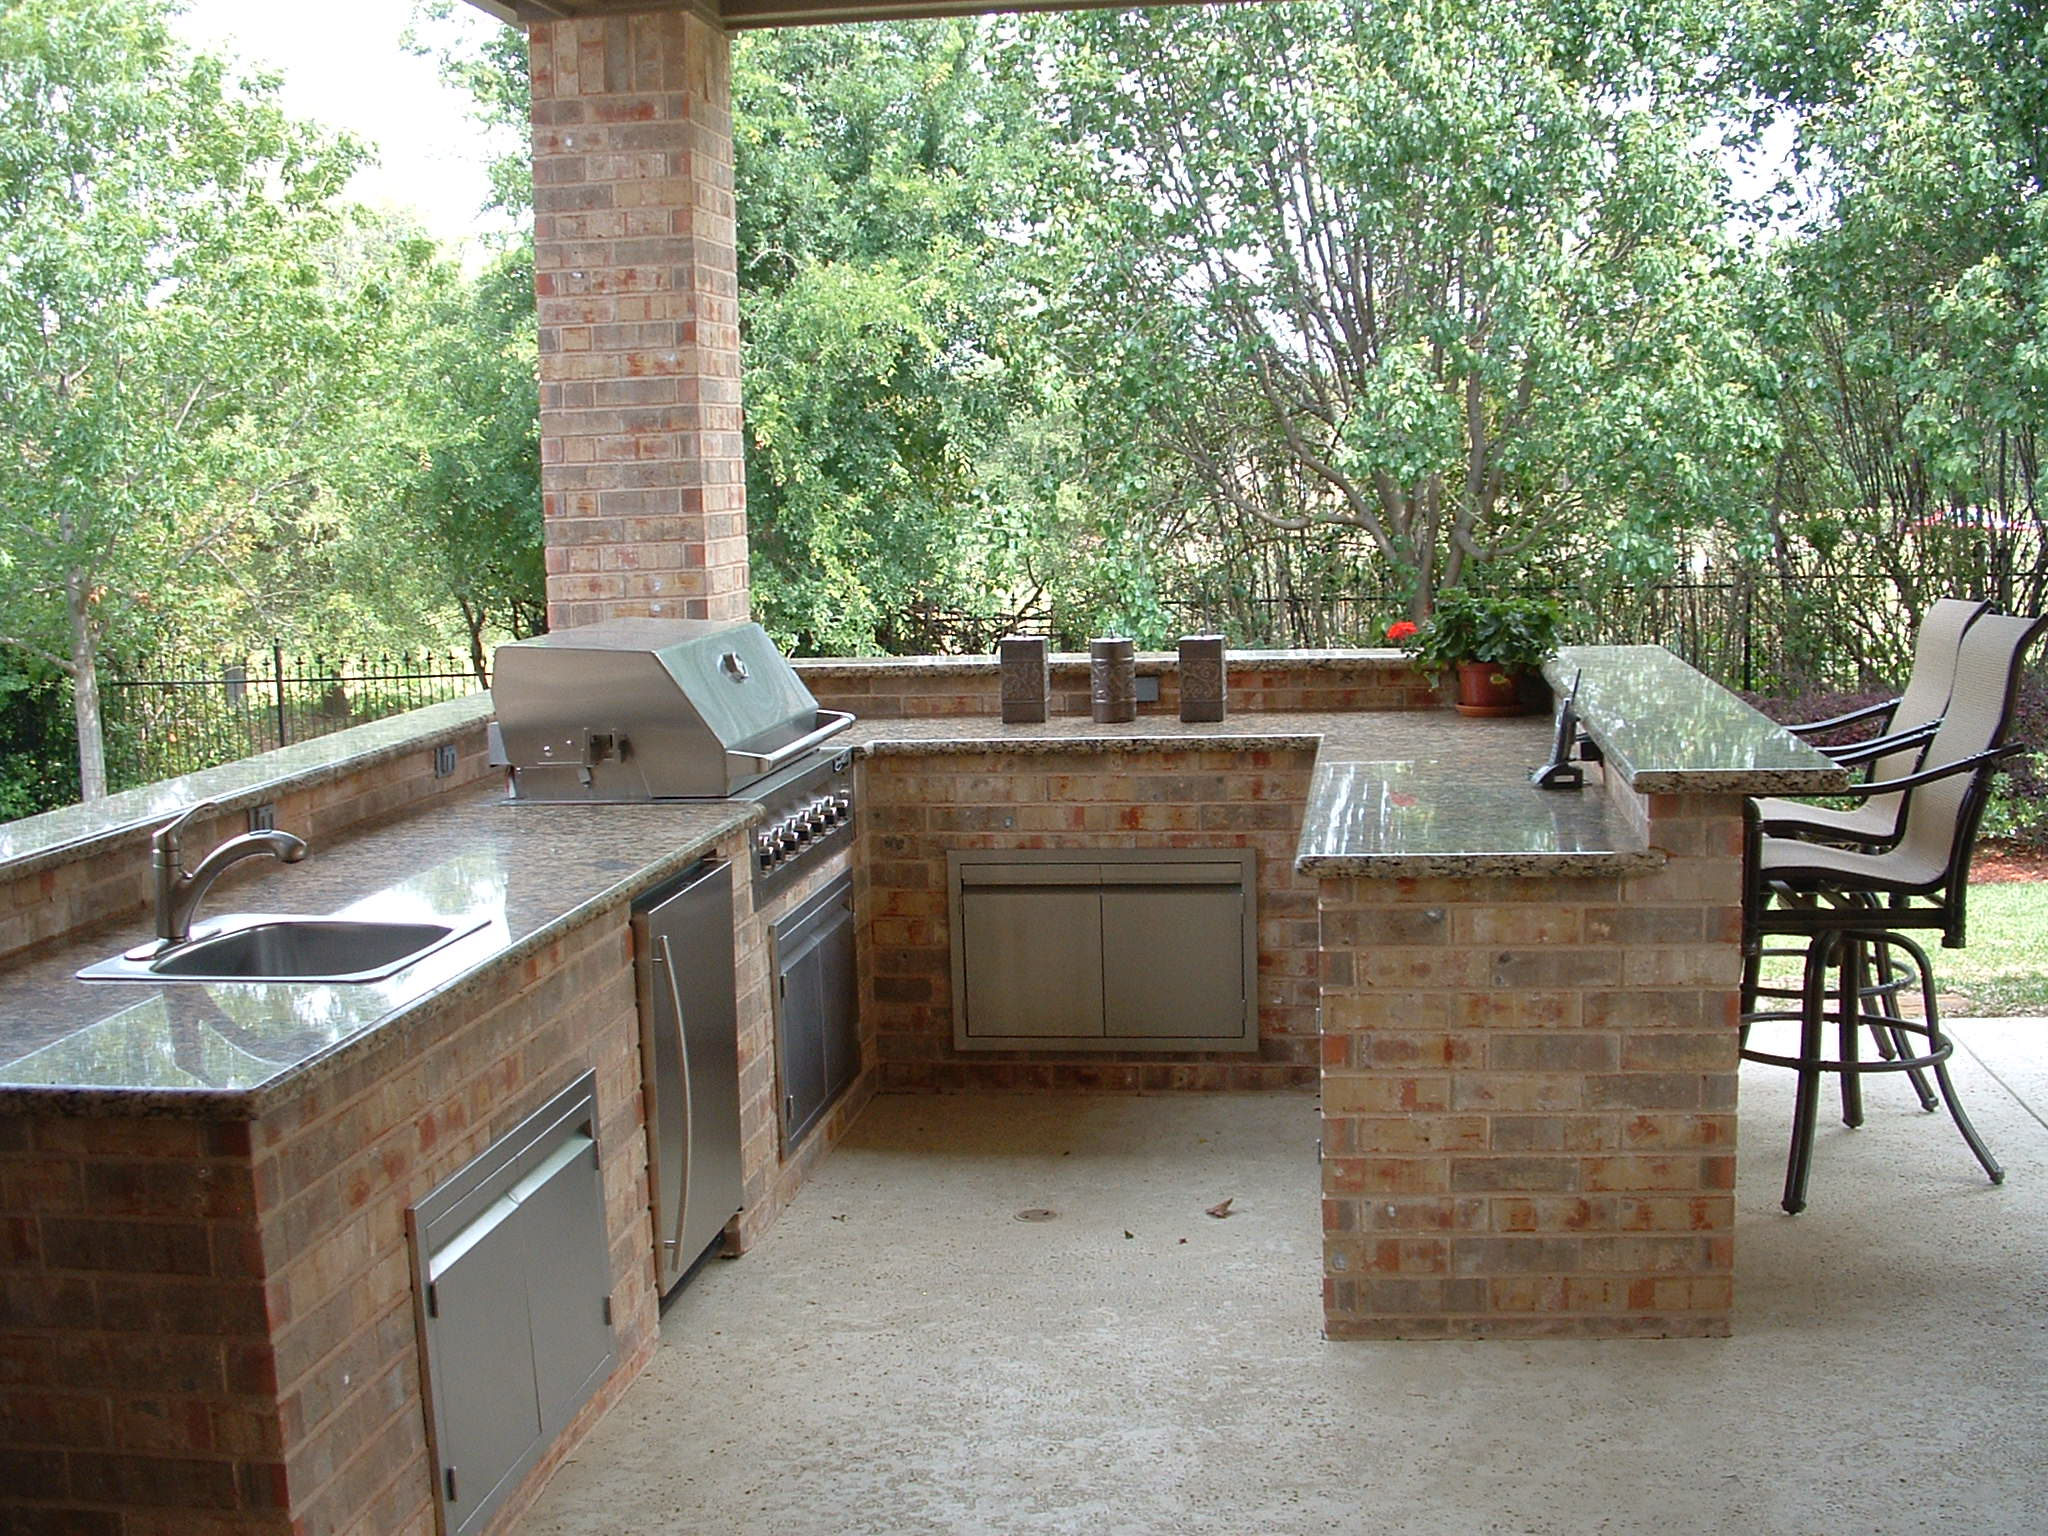 Backyard Kitchen And Bar : Planning and Installing an Outdoor Kitchen  Modlich Stoneworks